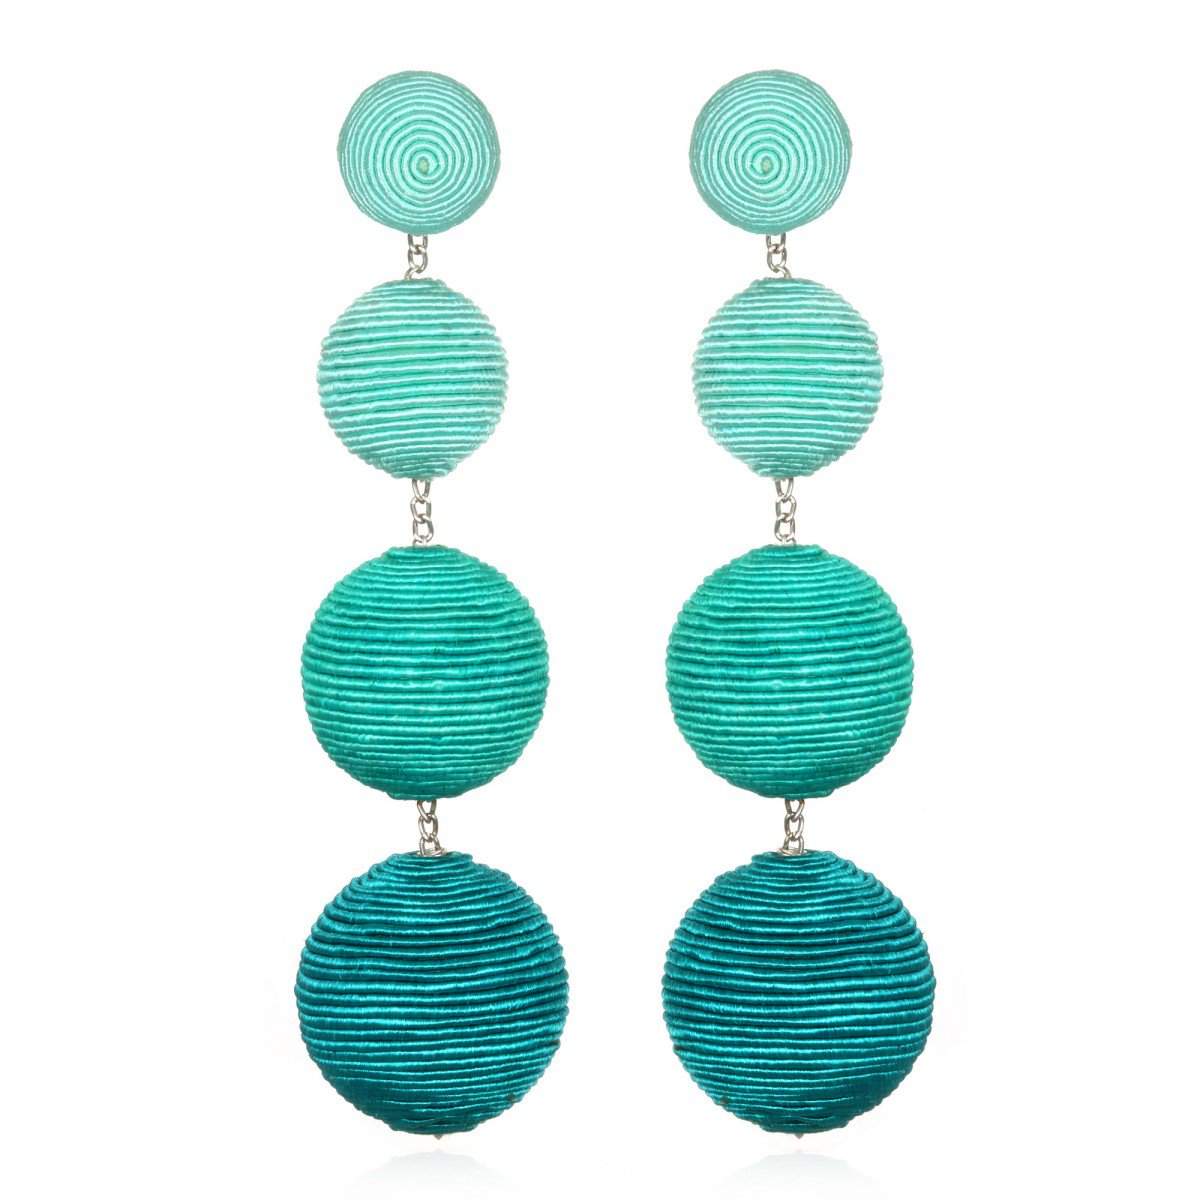 Teal Ombre Gumball Earrings by SUZANNA DAI